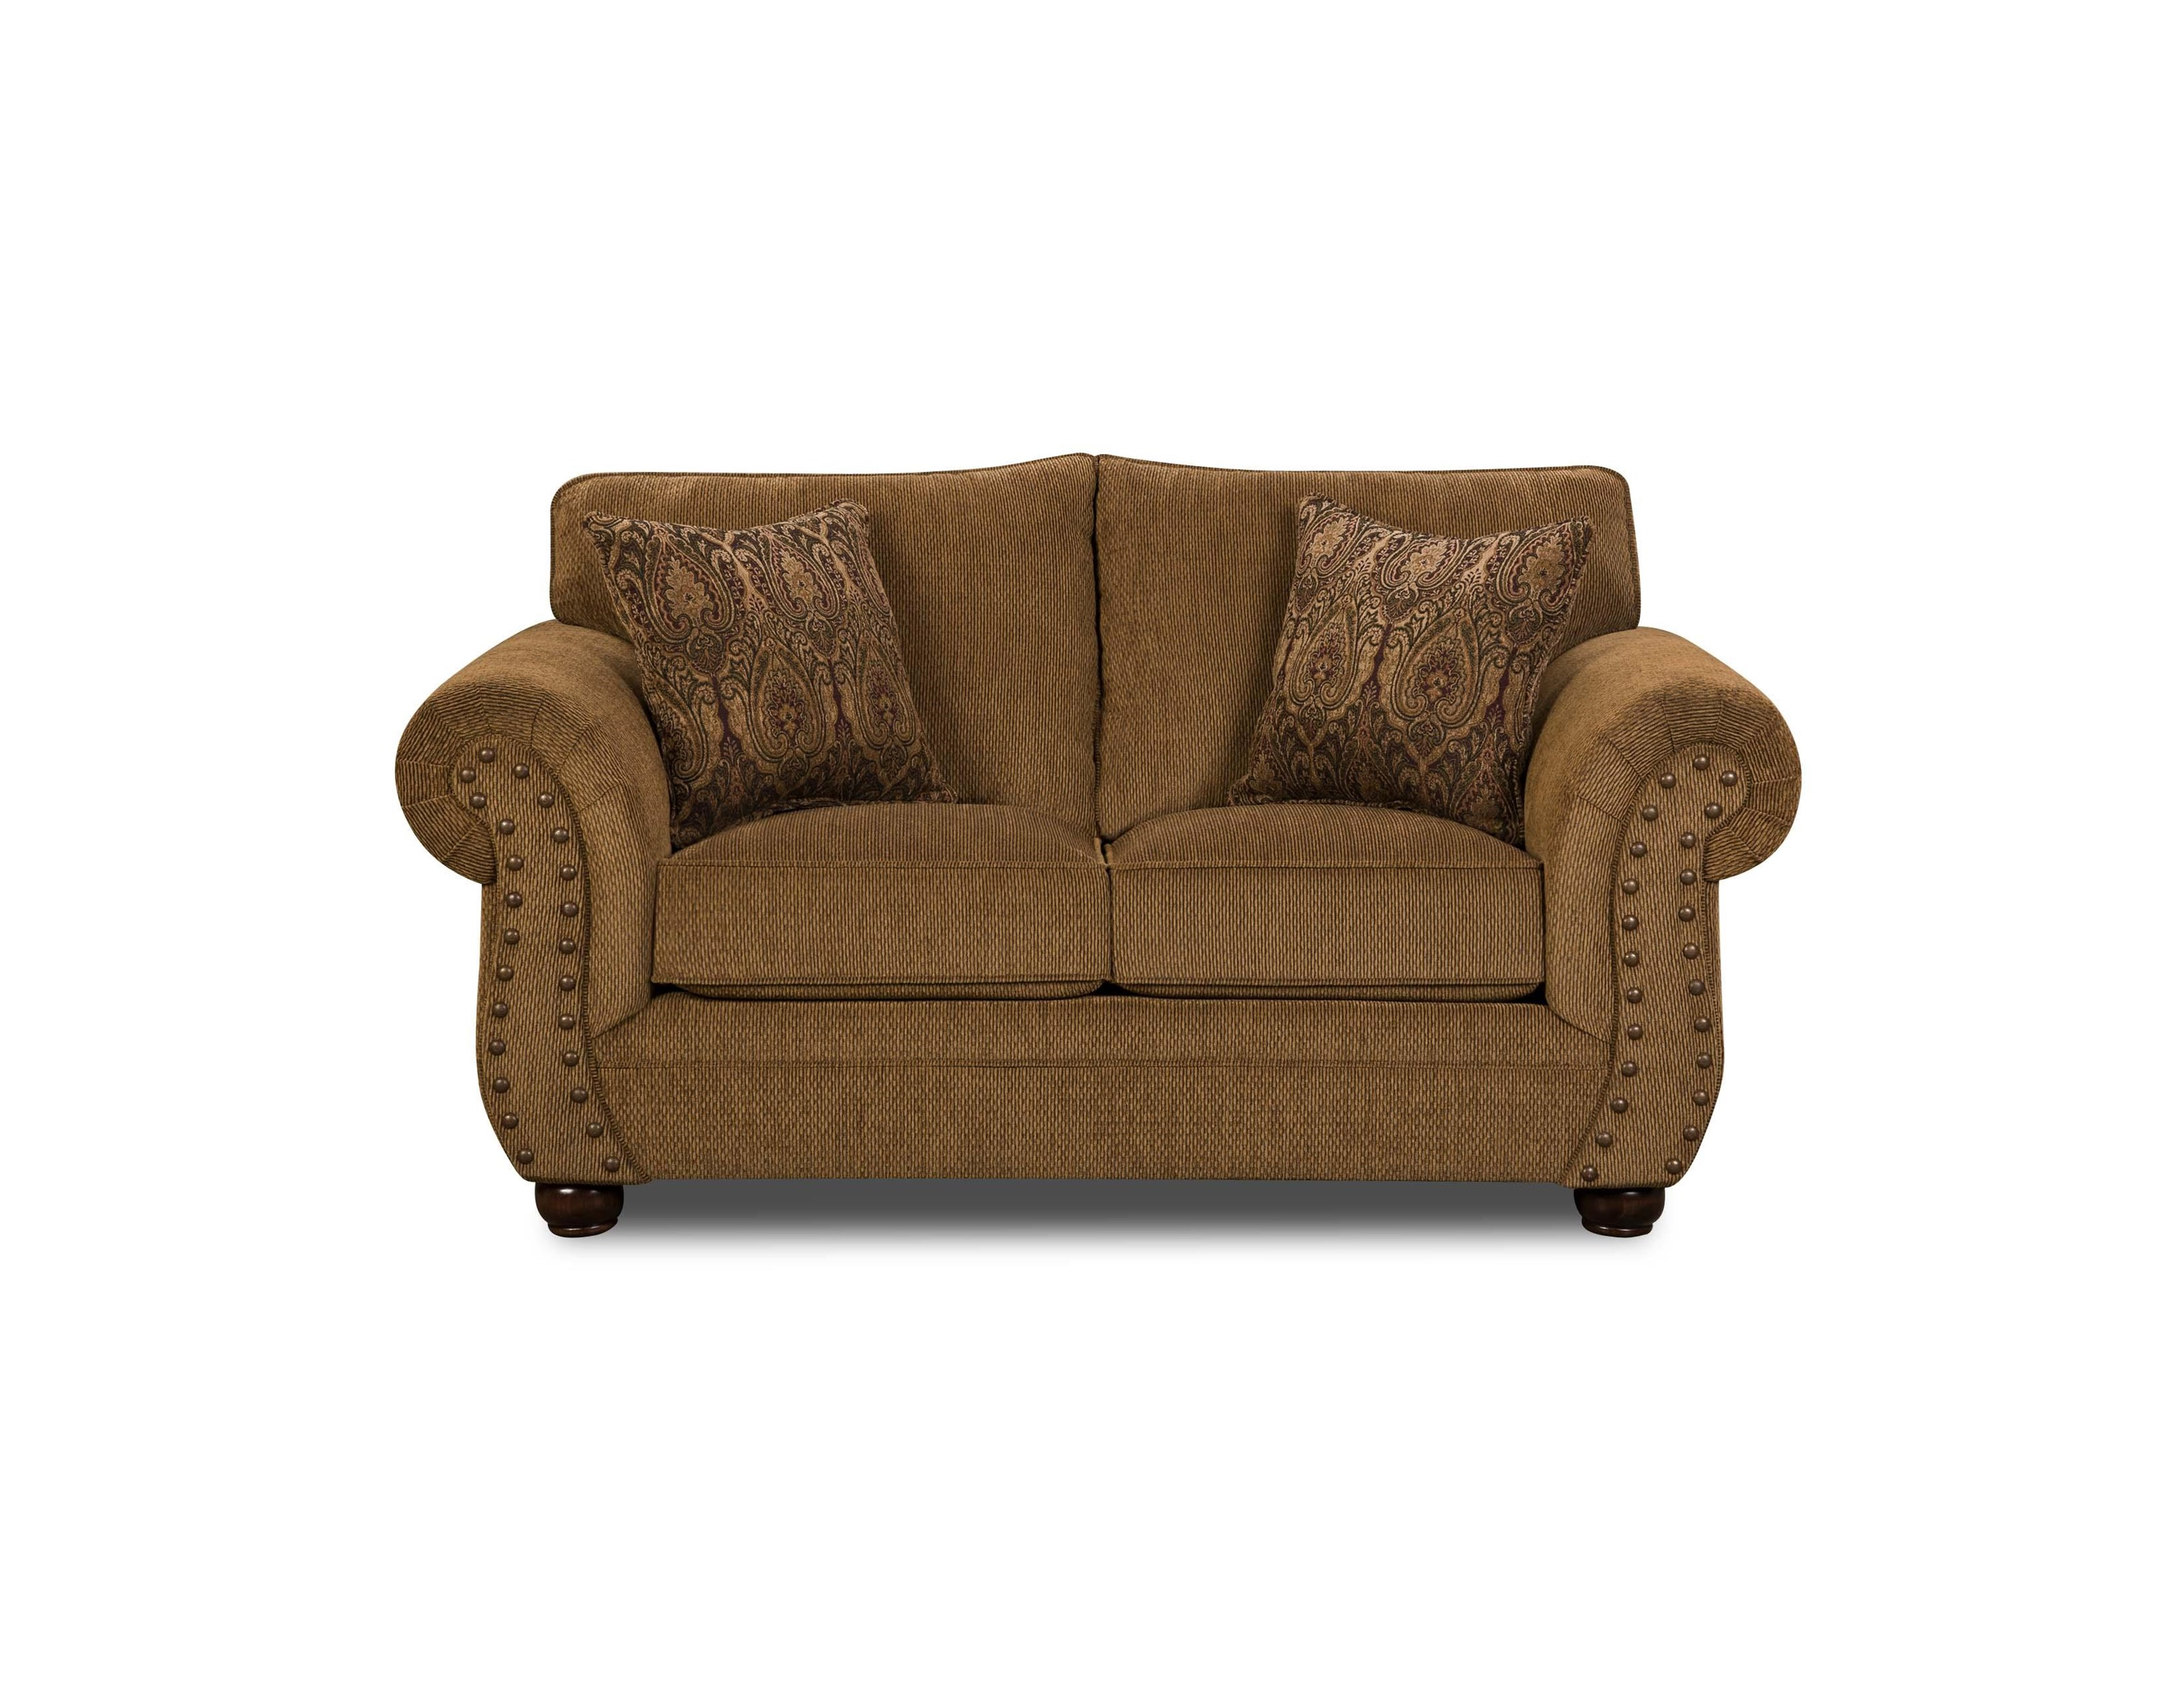 Simmons Upholstery 4276 Traditional Loveseat with Rolled Arms - Item Number: 4276L